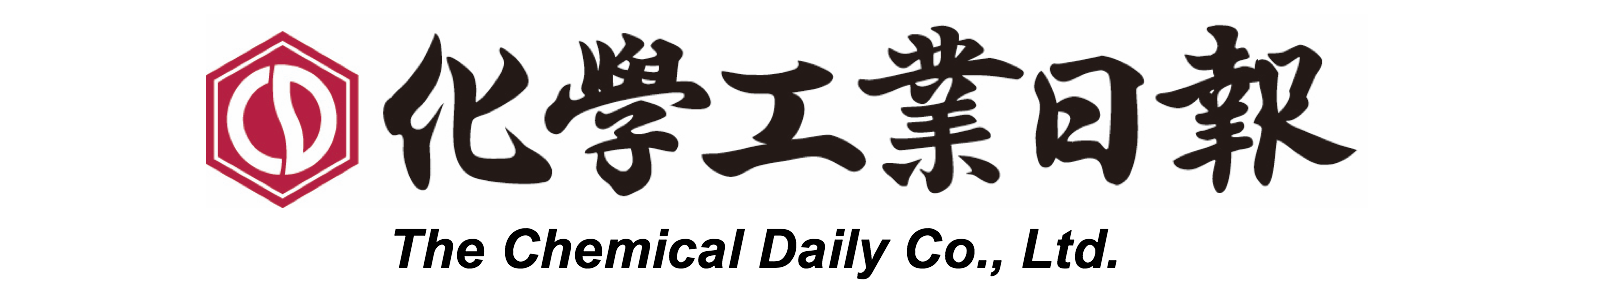 The Chemical Daily logo